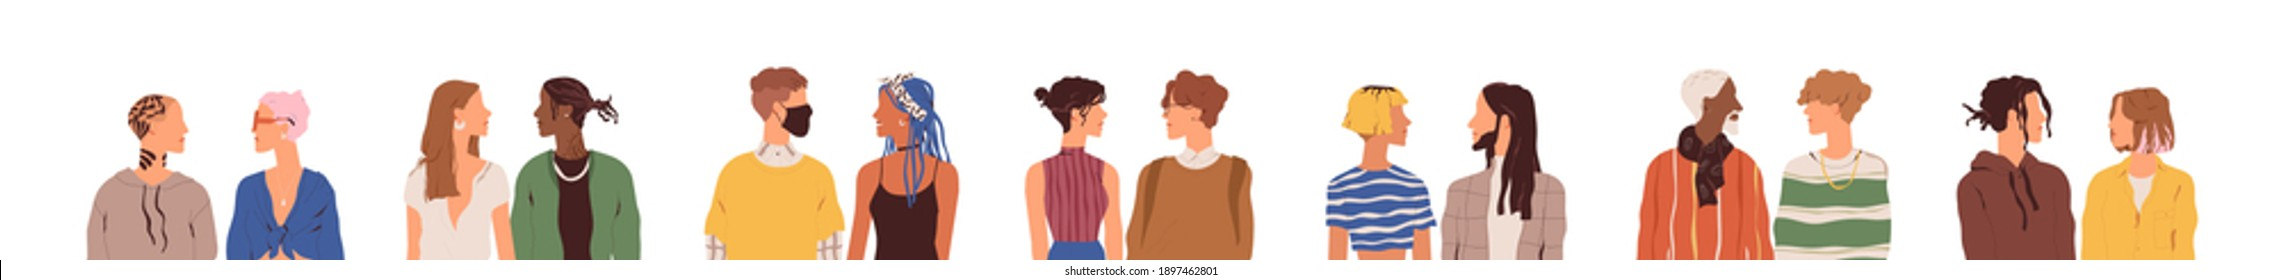 Set of modern couples chatting or talking. Young people meeting and communicating. Diverse faceless characters looking at each other. Colored flat vector illustration isolated on white background